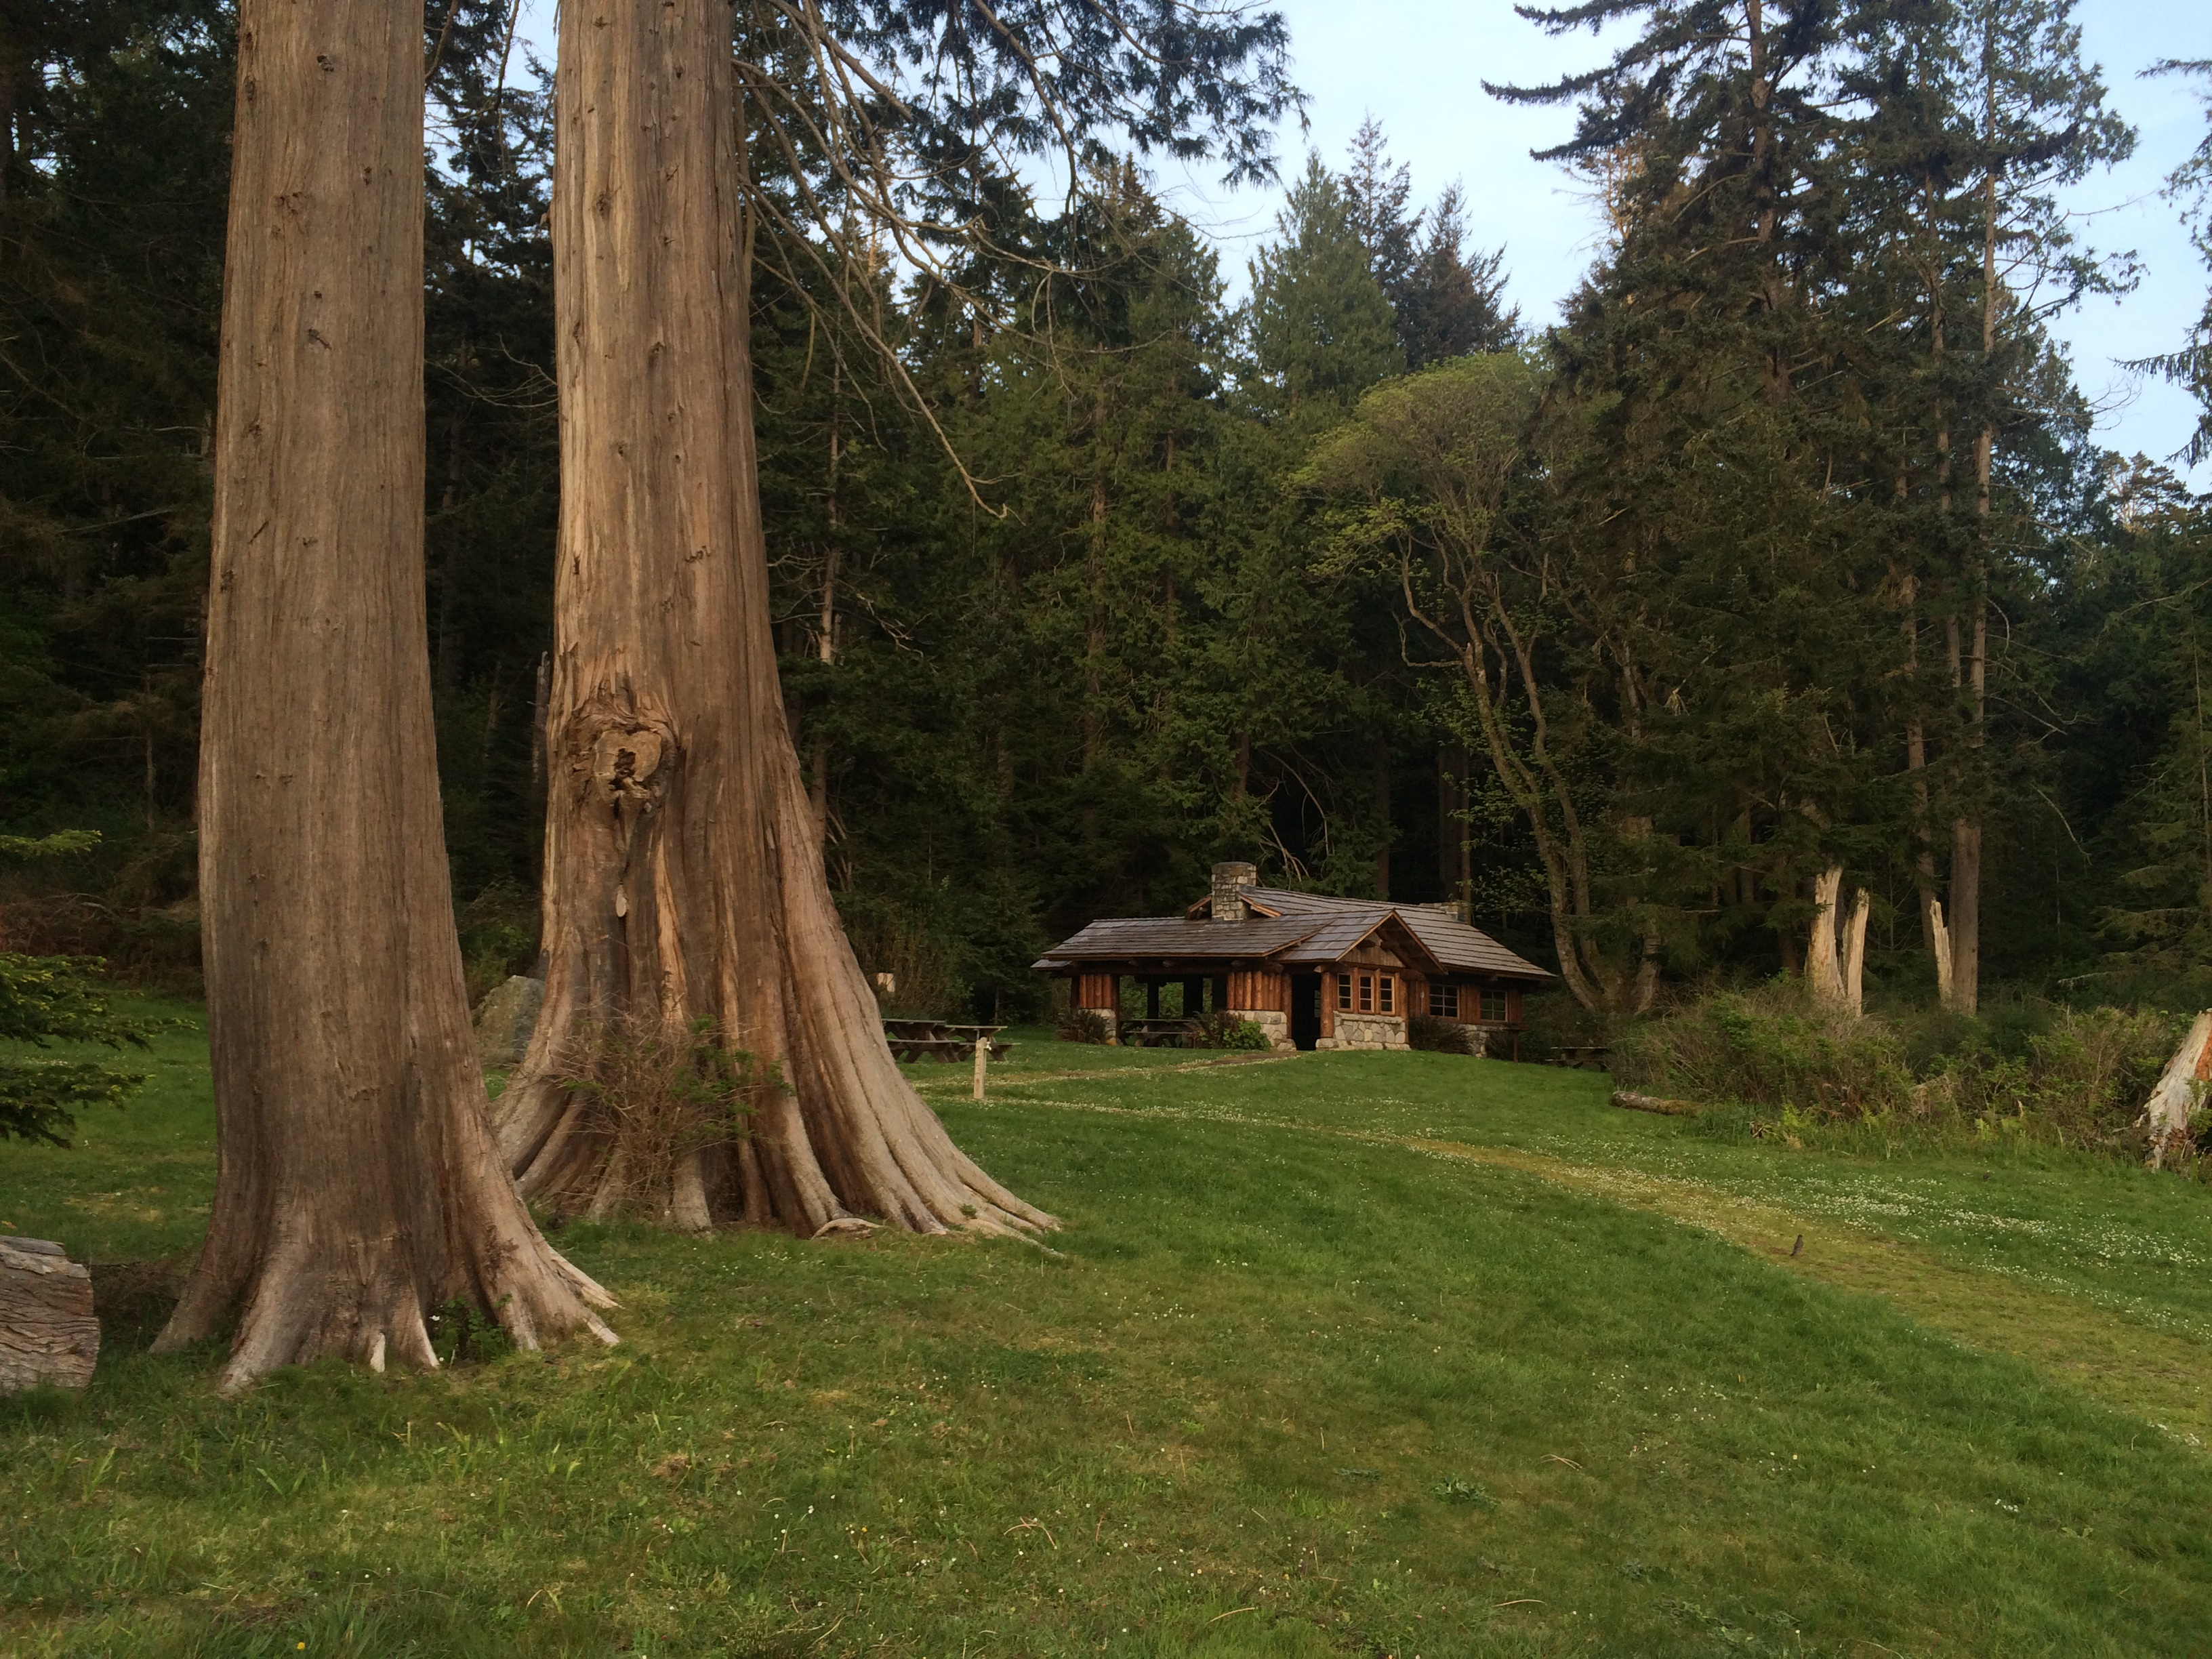 Old growth trees and a rustic cabin